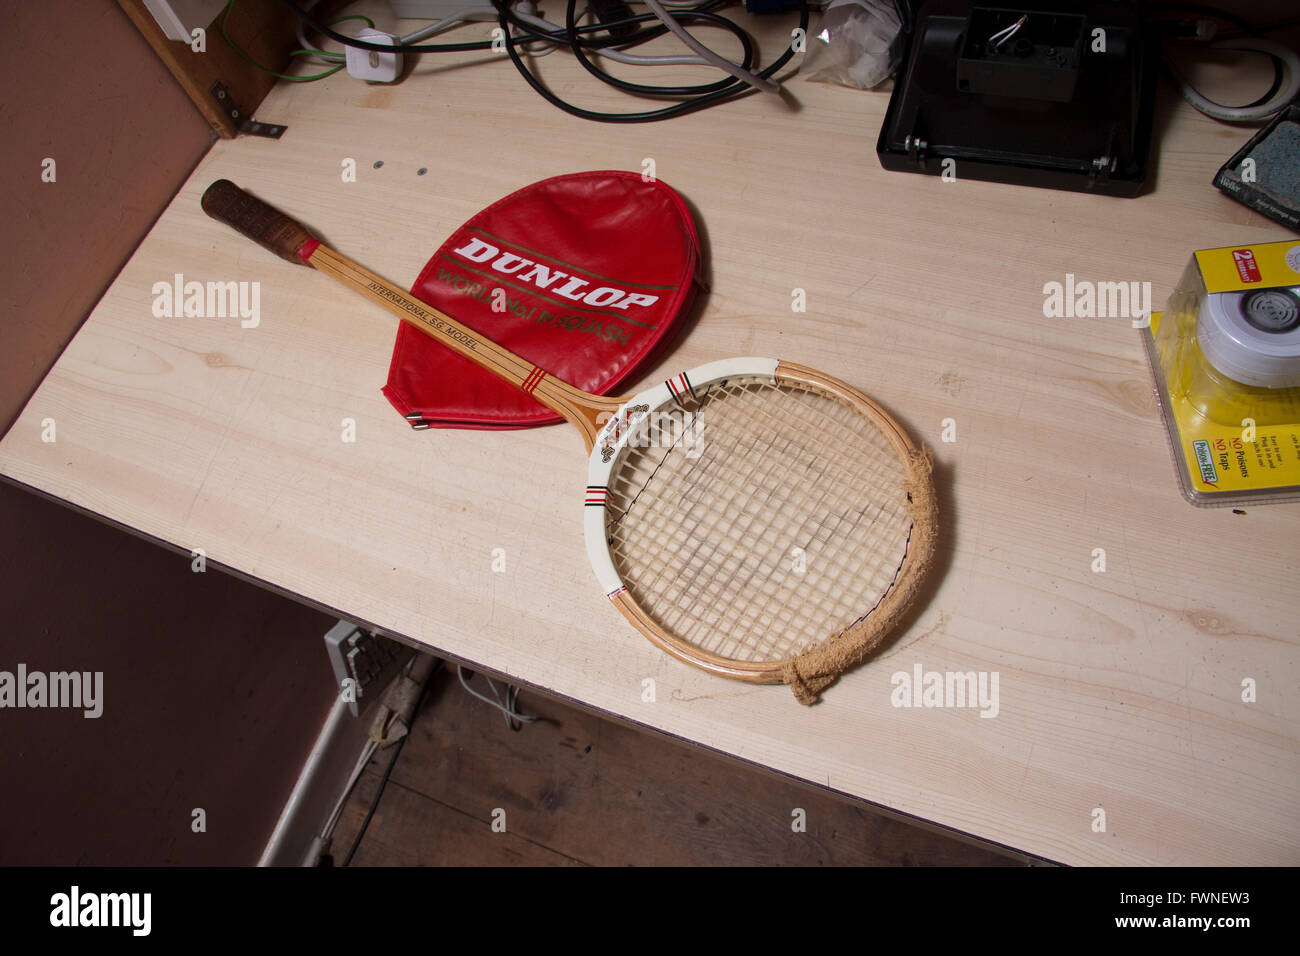 A Dunlop Maxply Squash Racquet/racket With Cover On A Work Bench